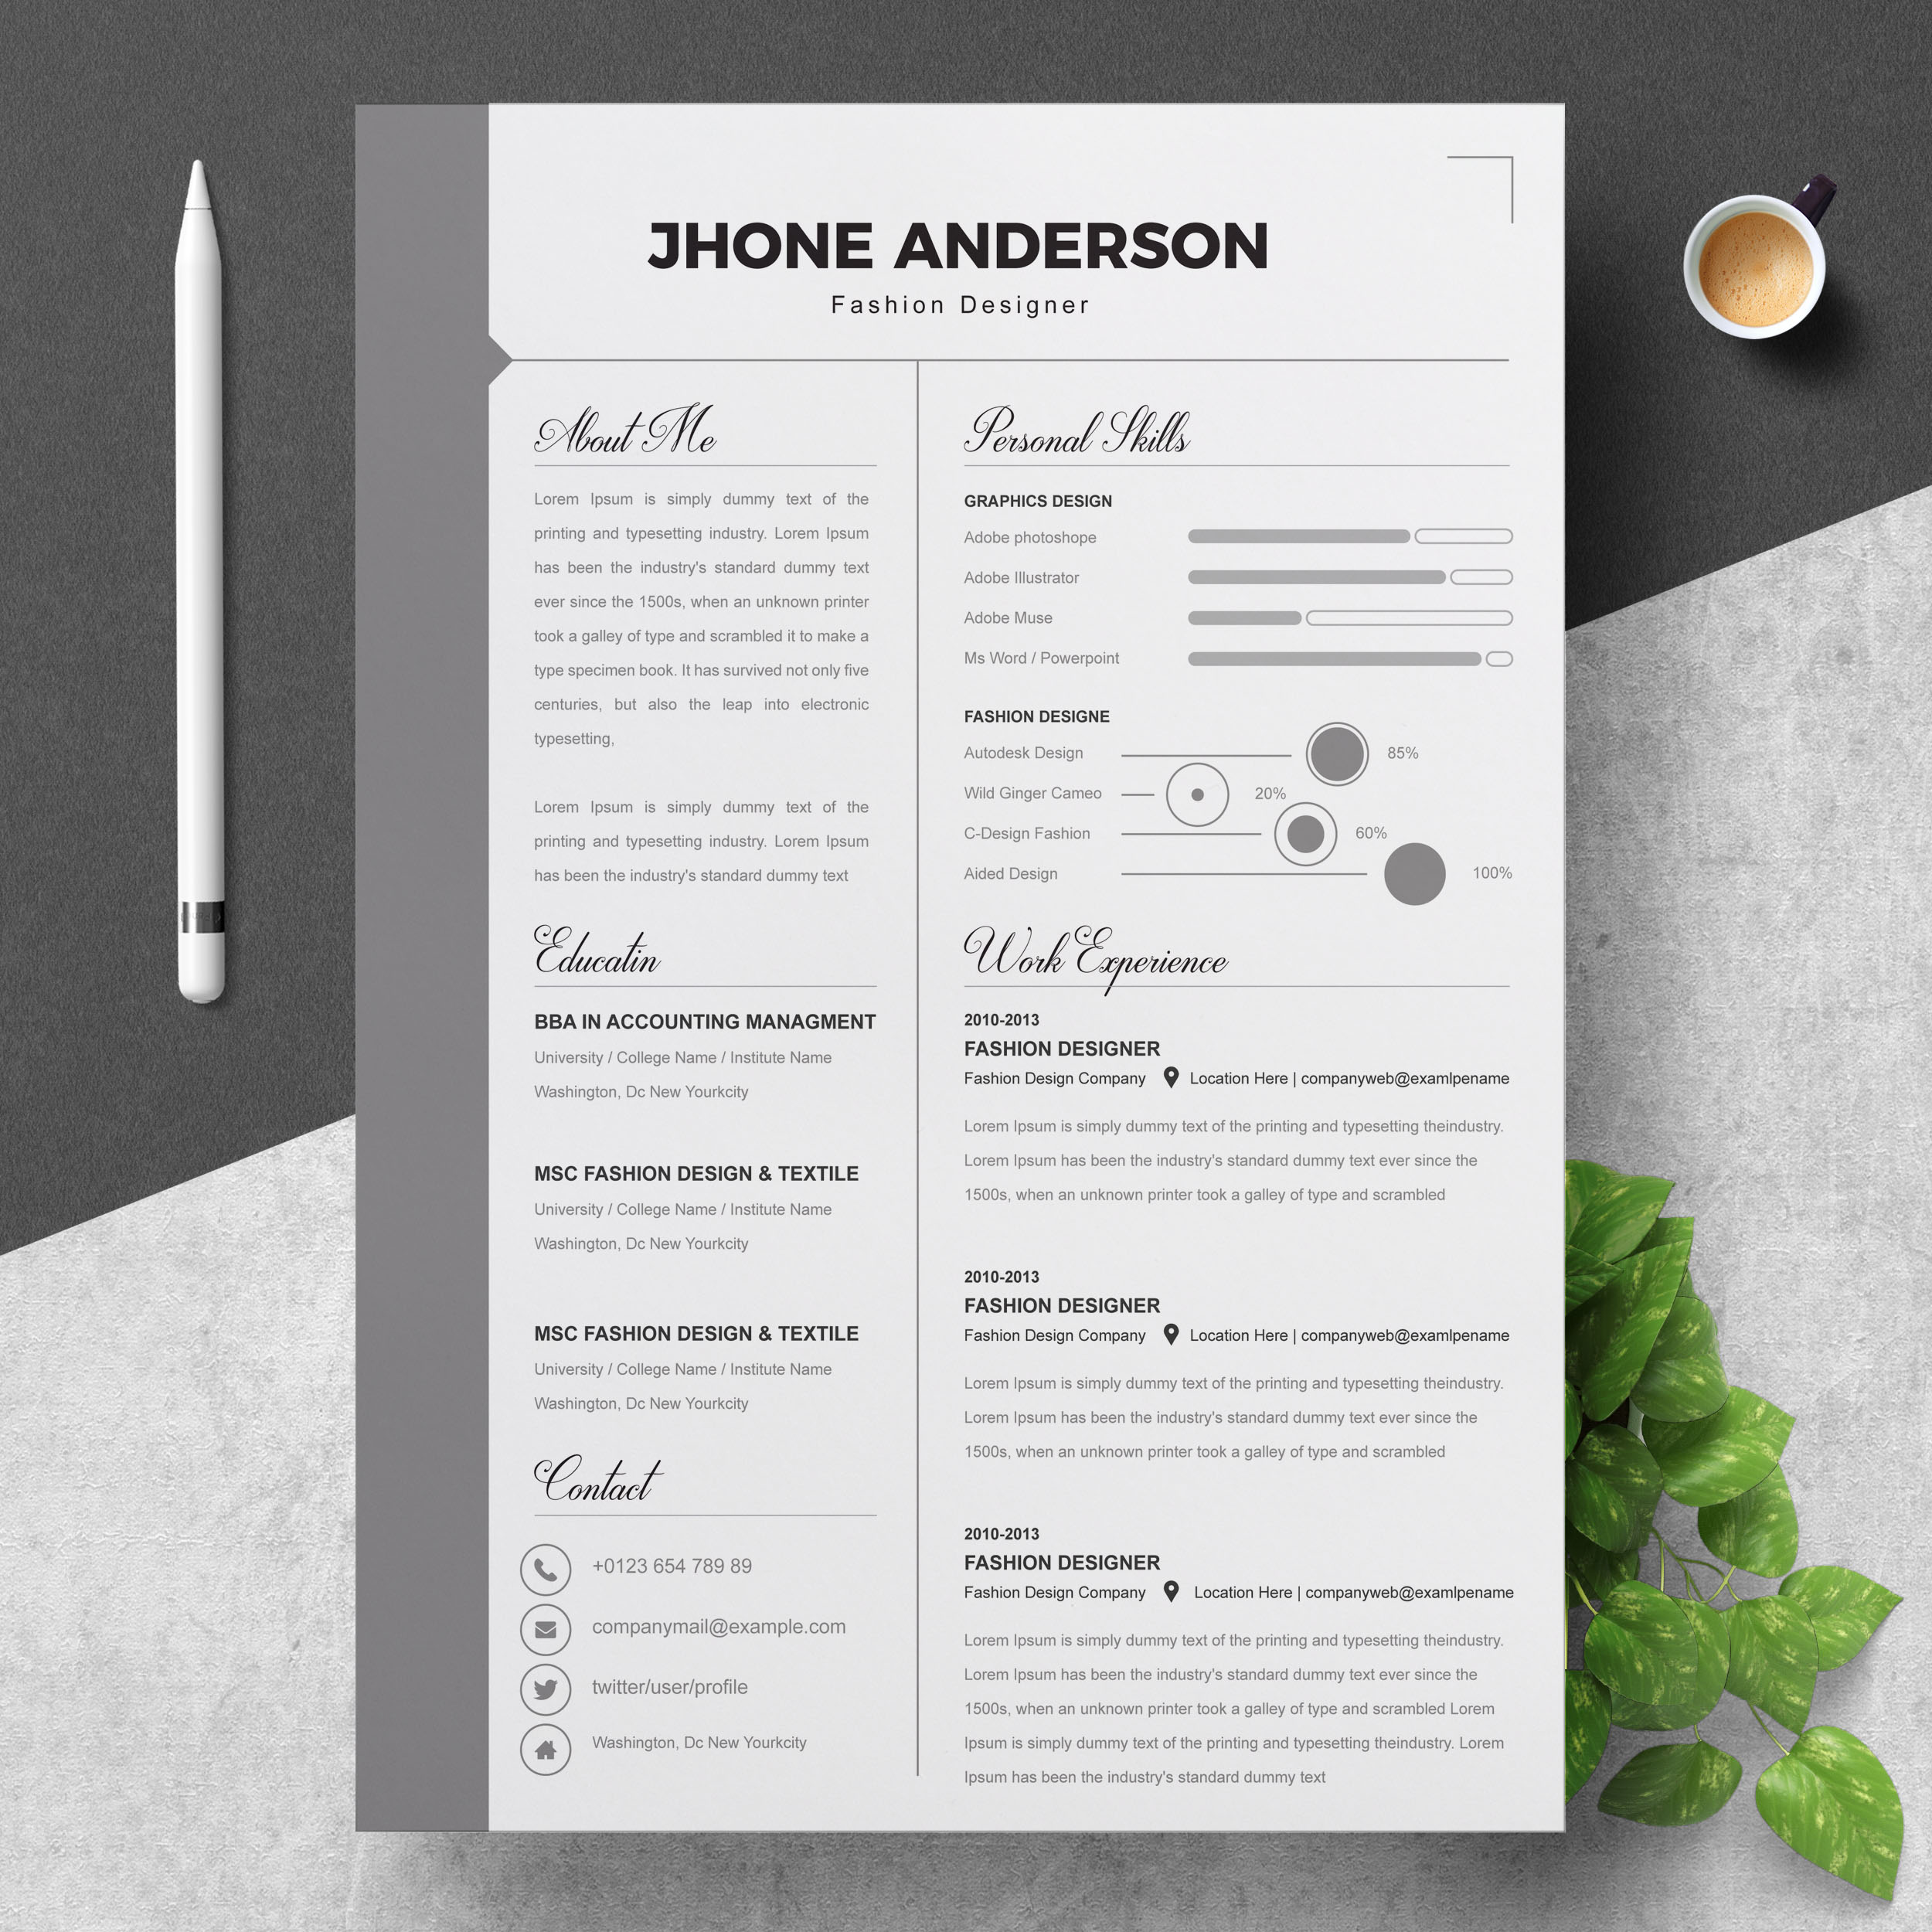 infographic fashion designer resume